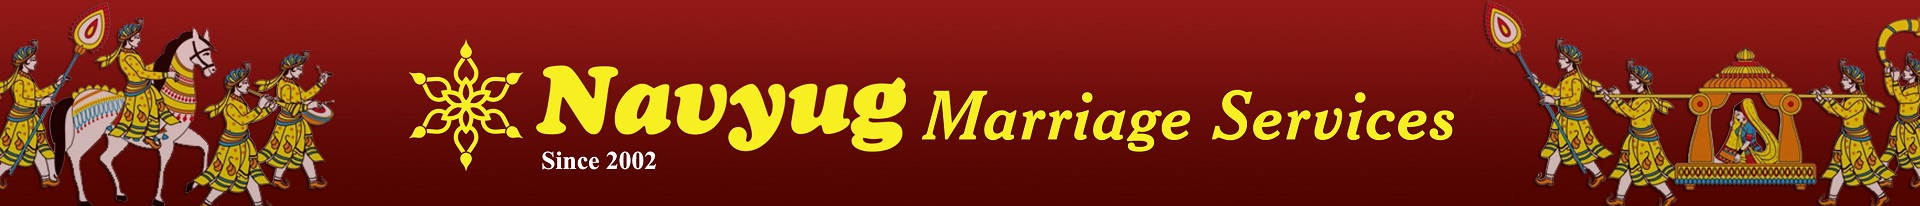 Navyug Marriage Services